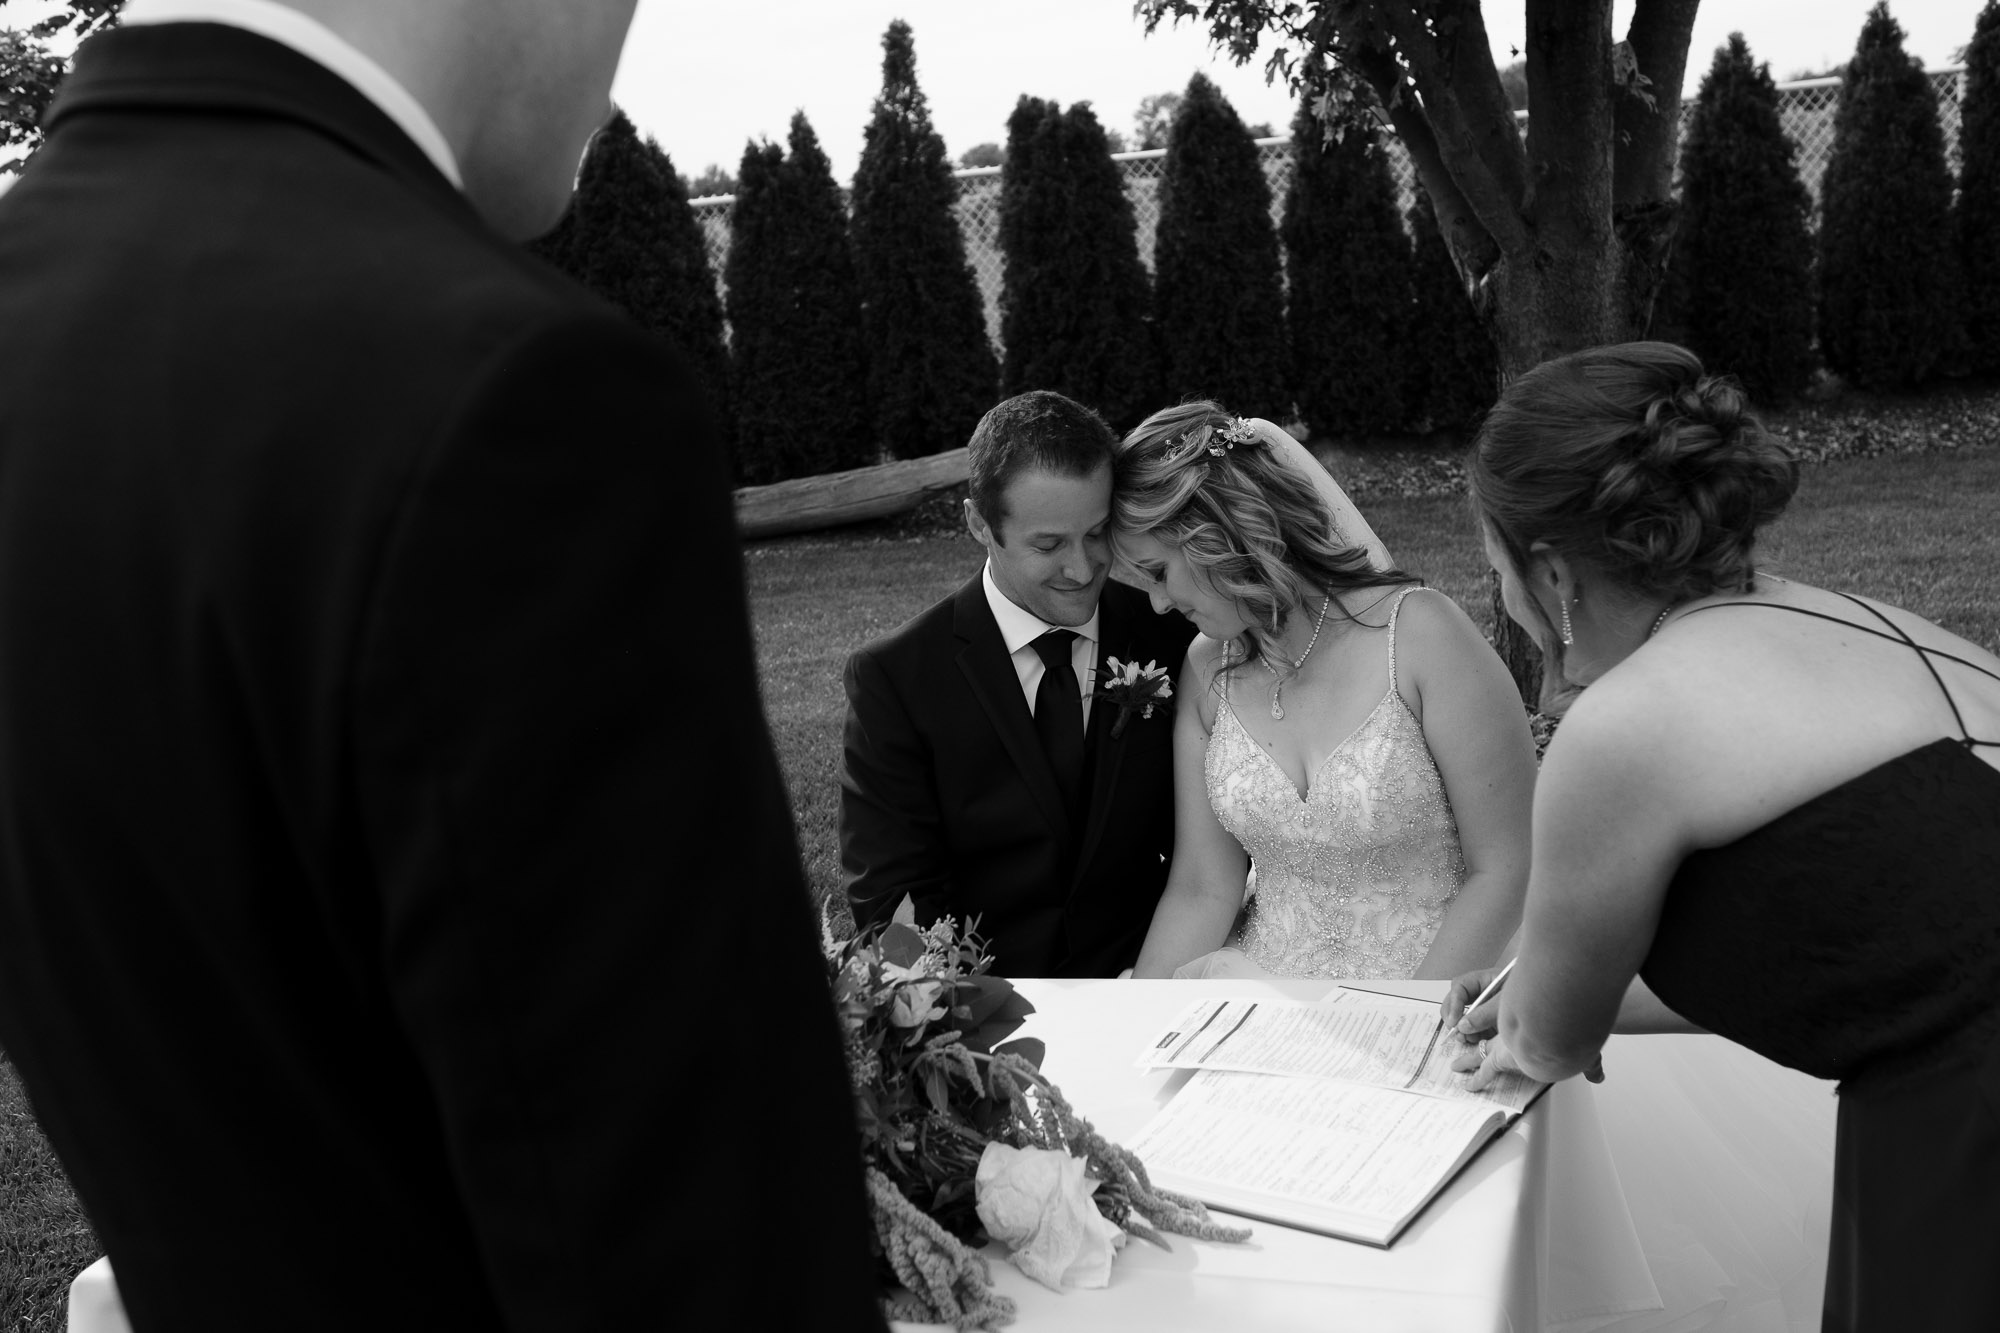 Alex and Colton share an intimate moment during the signing of the registry at the end of the wedding ceremony at the Hessenland Inn.